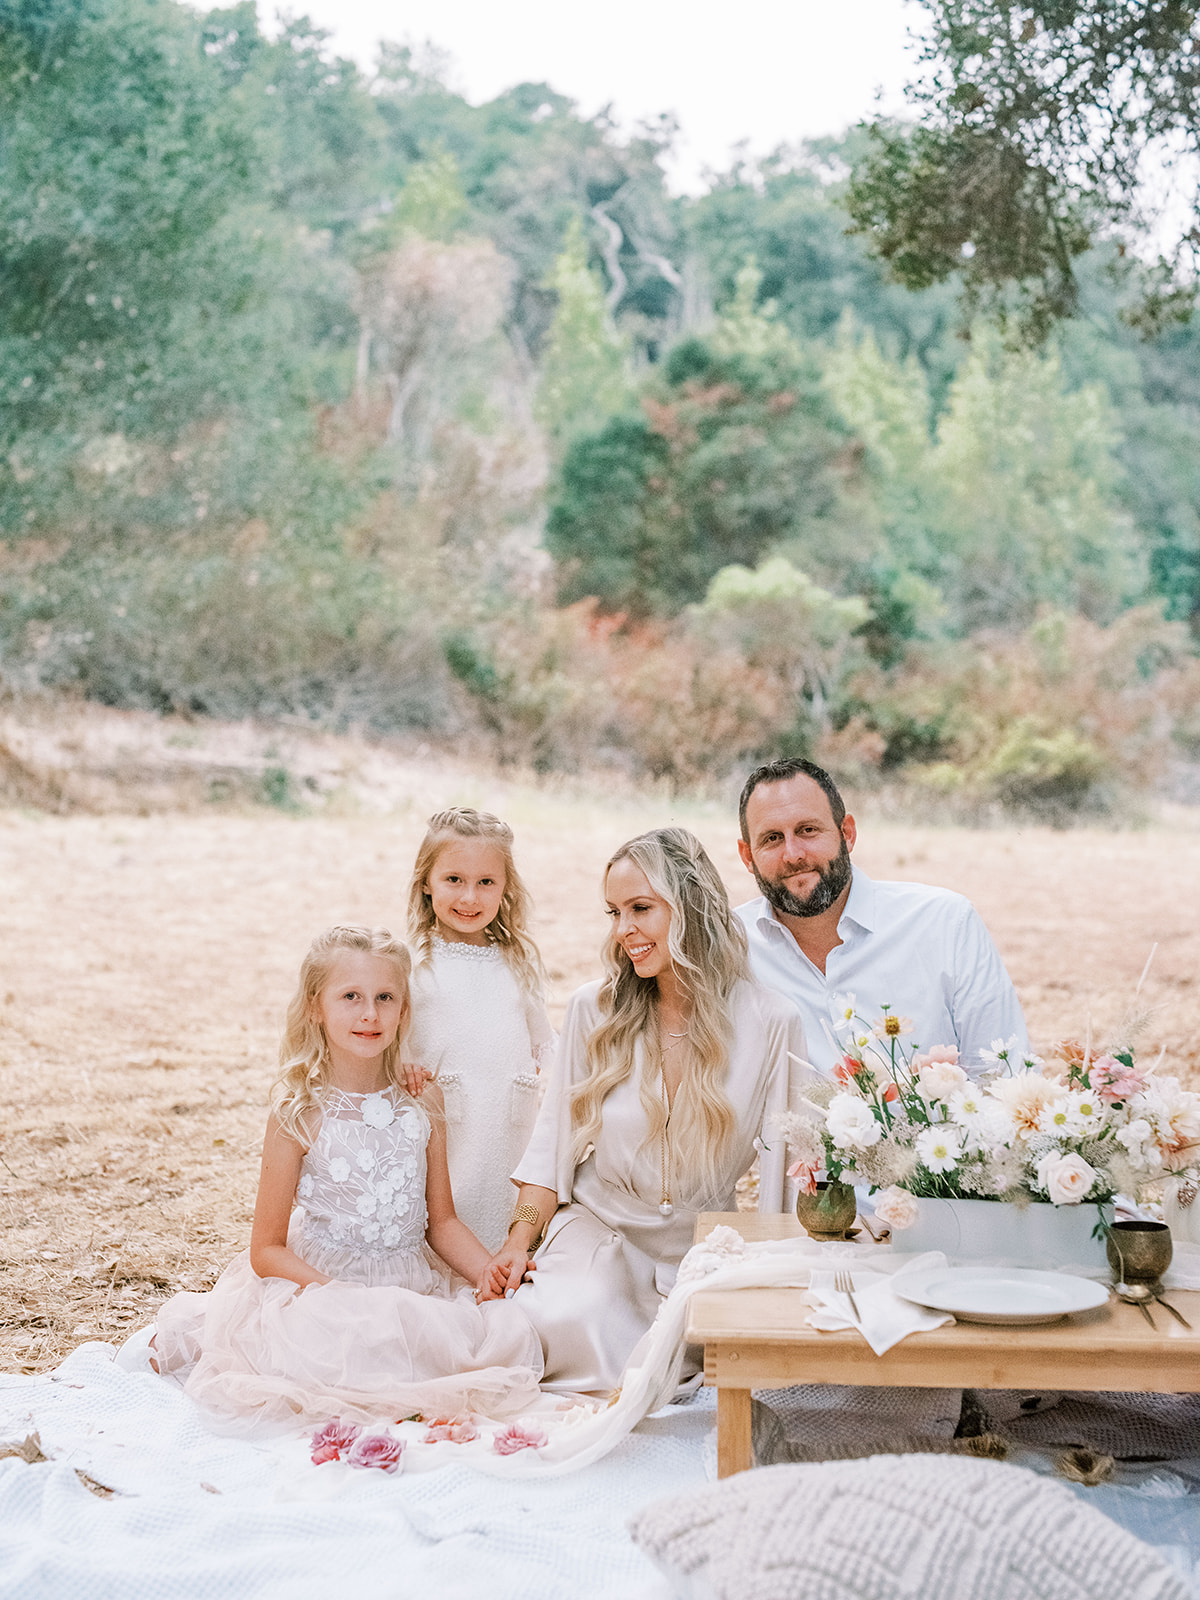 Whimsical boho picnic photoshoot ideas, with family in an outdoor location, featured by San Francisco fashion blogger Lombard & Fifth.